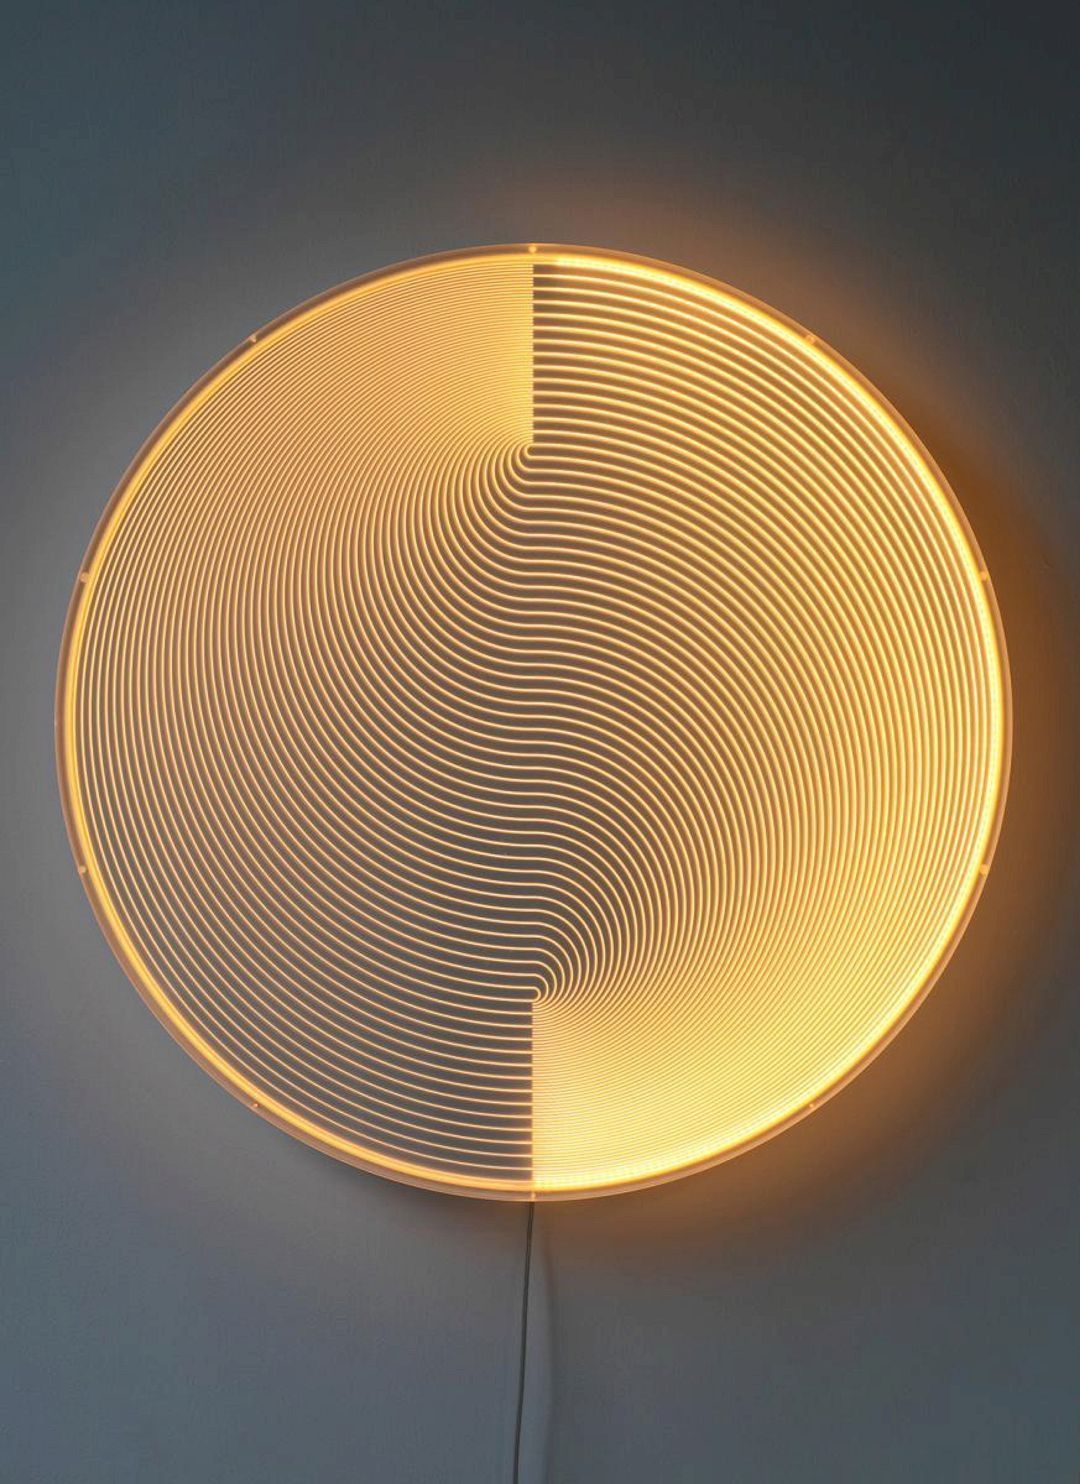 Every room deserves an ideal ambient lighting if your living room every room deserves an ideal ambient lighting if your living room lacks great lighting and you would like great lighting with an interesting lamp which arubaitofo Choice Image